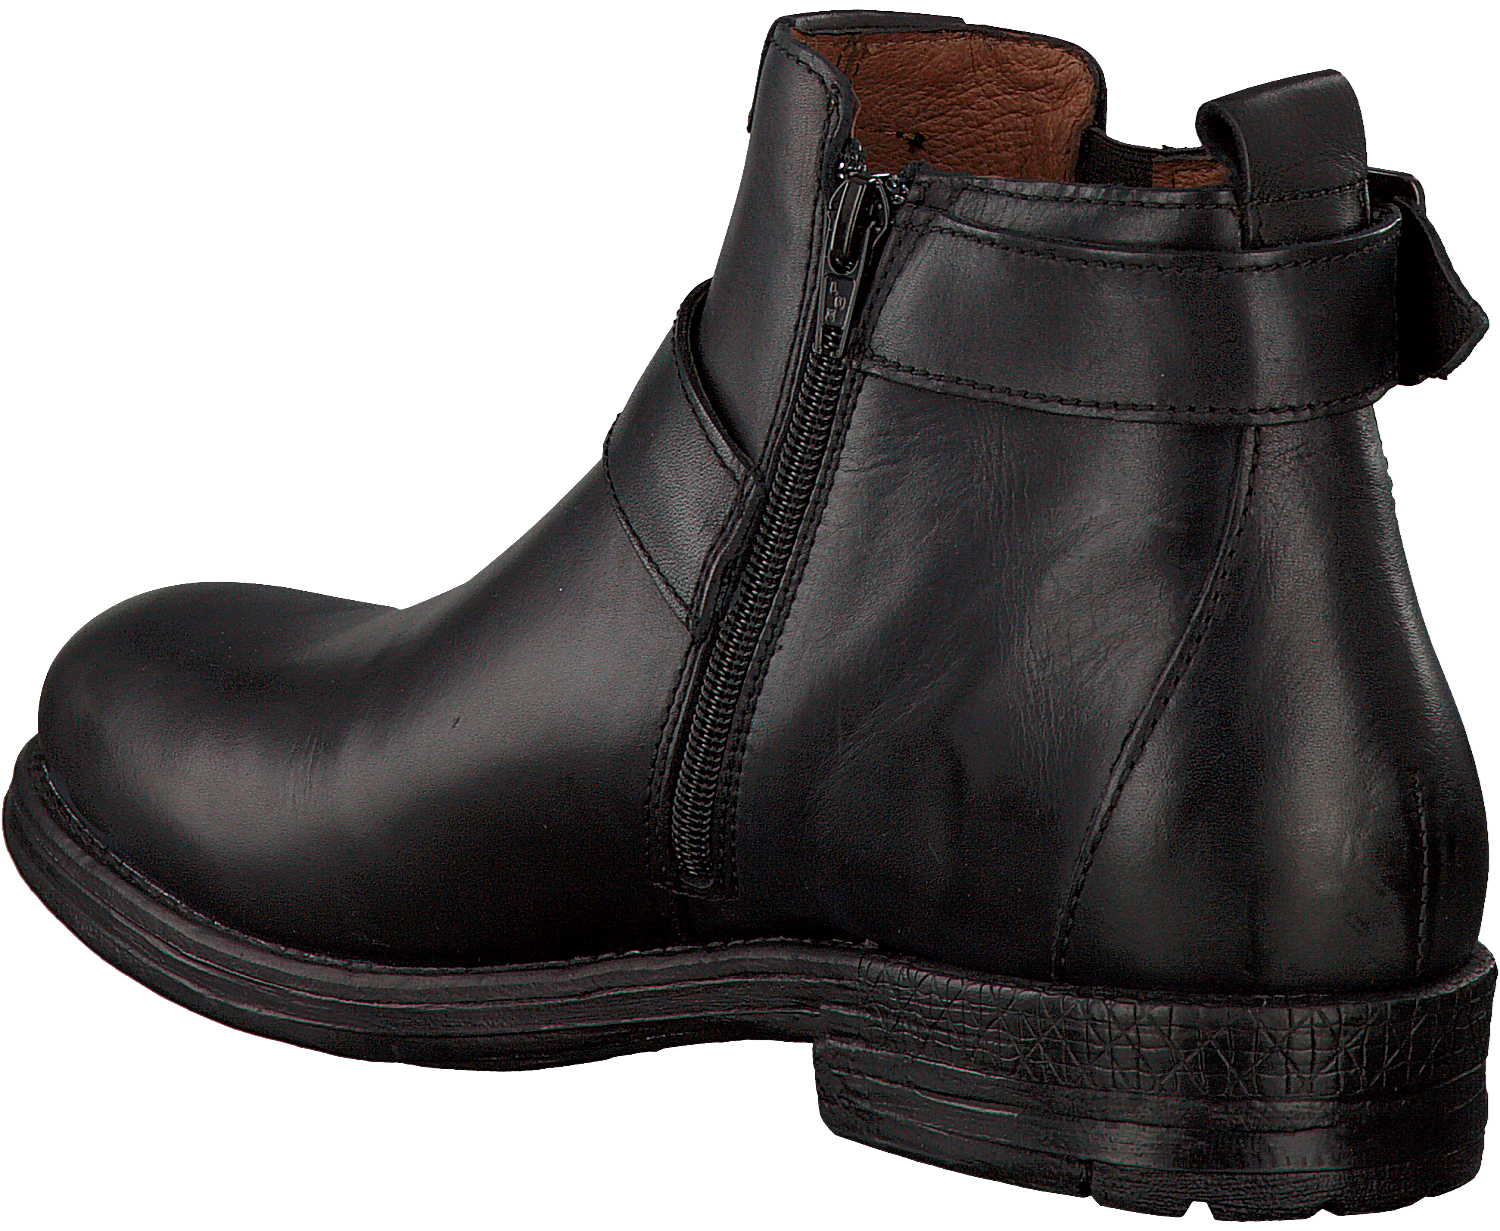 Replay Replay Bottines Noires Cerf 6PgFtSP